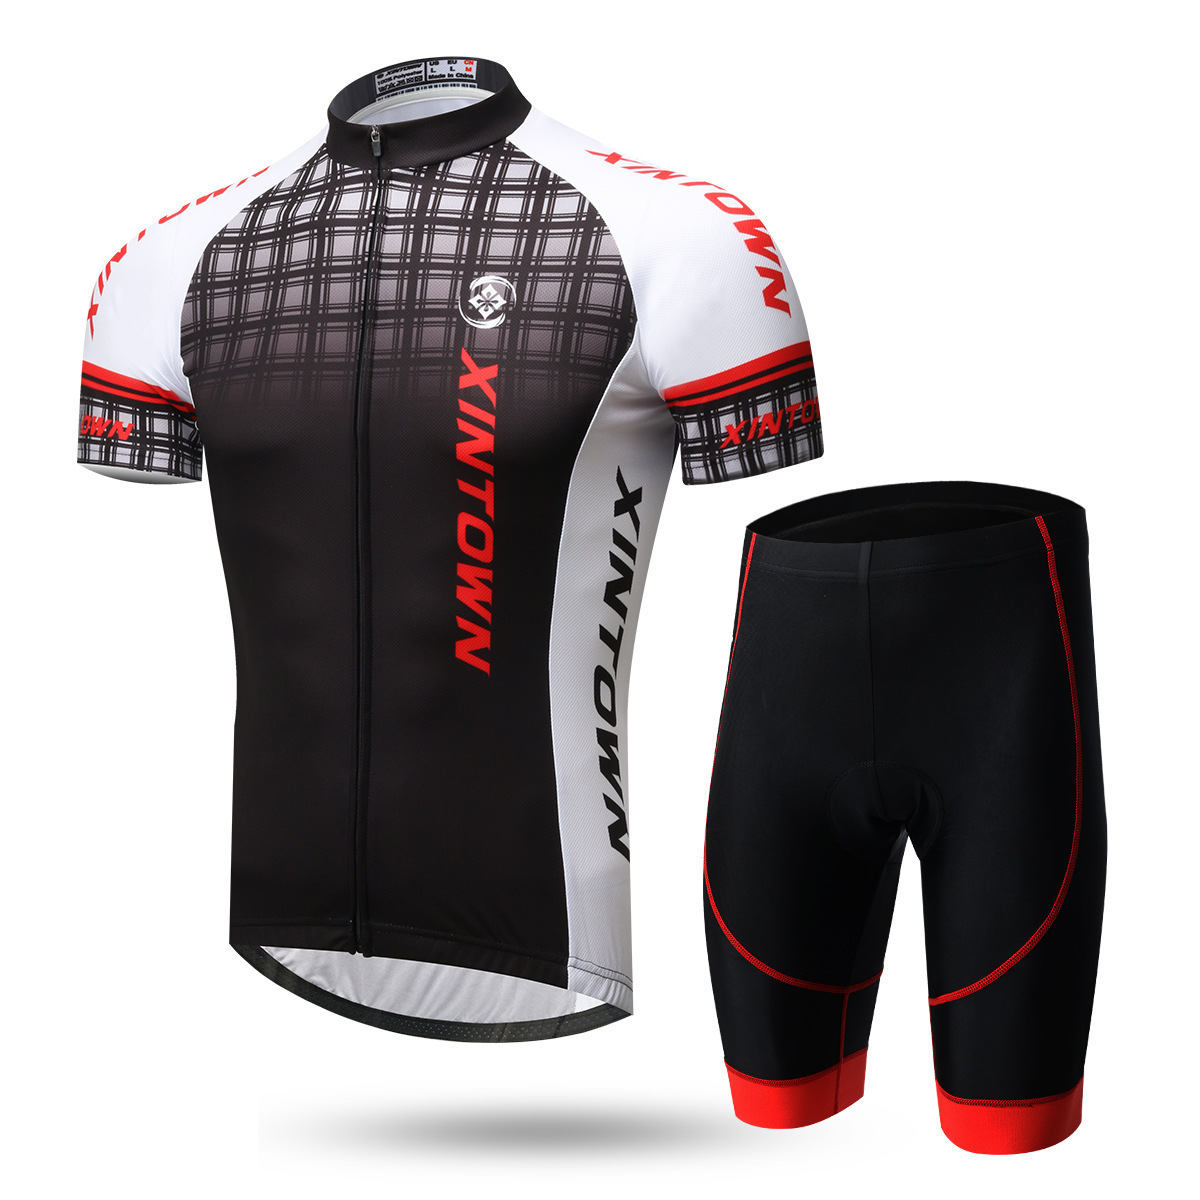 XINTOWN Men Summer Cycling Jerseys Pro Team Bicycle Clothing Bike Clothes Short Sleeve Sport Wear MTB Cycling Sets 3D Gel Pad xintown new 2018 spring cycling jersey set long sleeve 3d gel padded sets bike clothing mtb protective wear cycling clothes sets